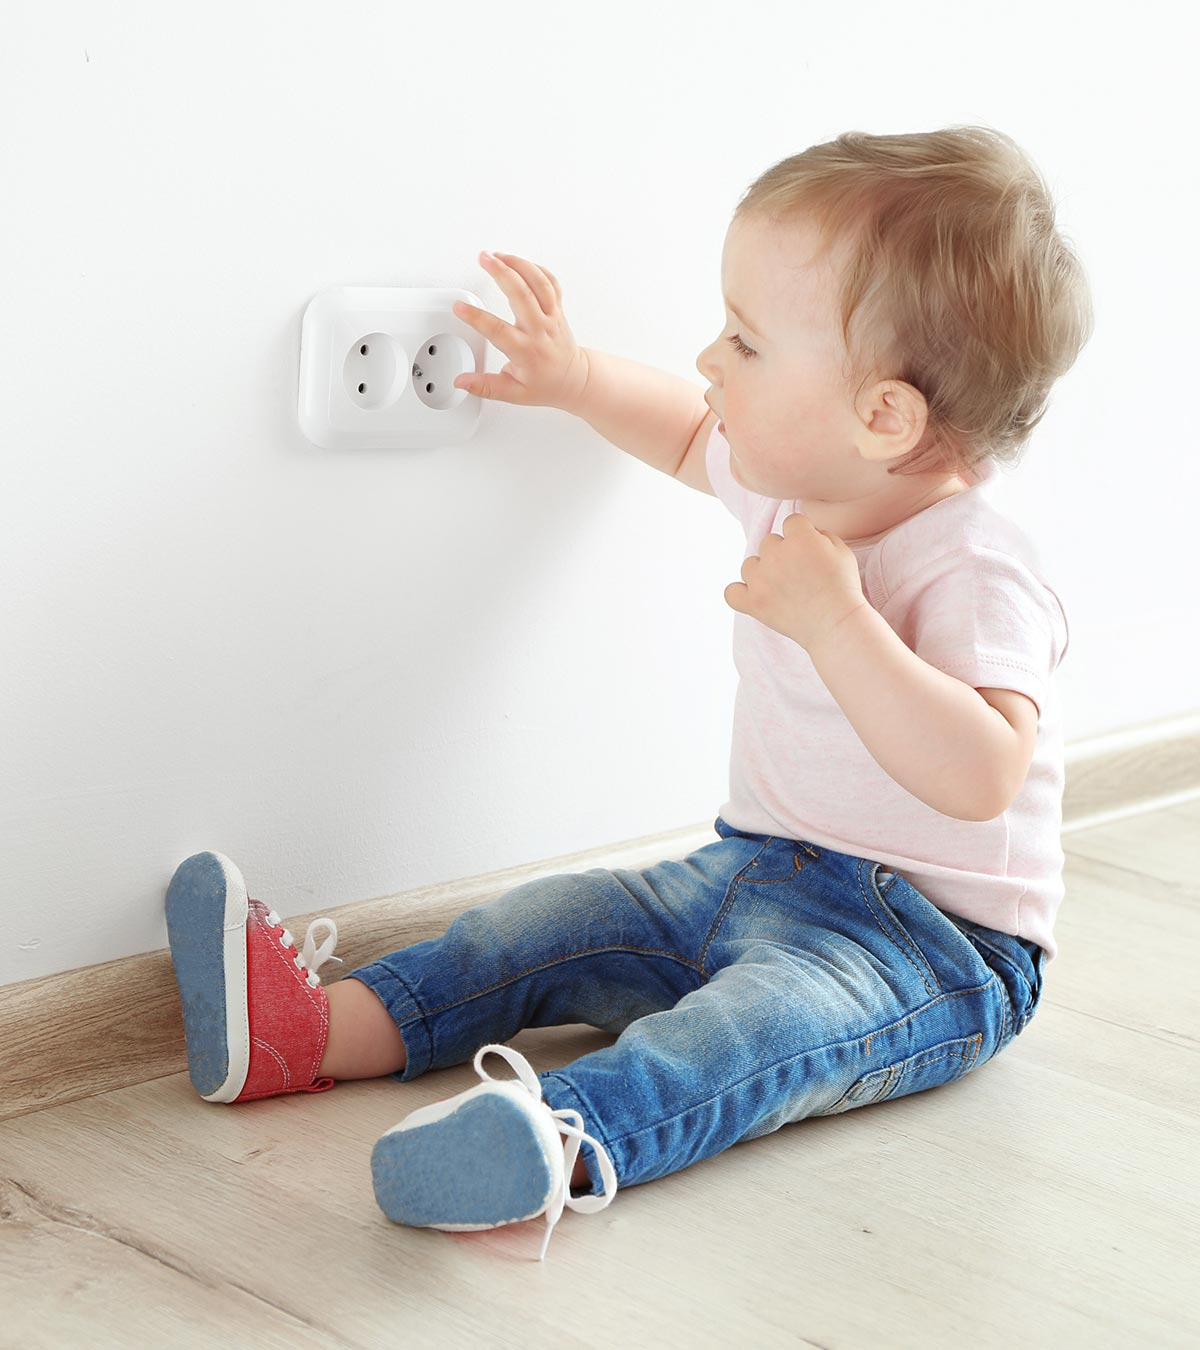 60 Electrical Wall Socket Plug Outlet Safety Caps Covers Baby Child Proofing